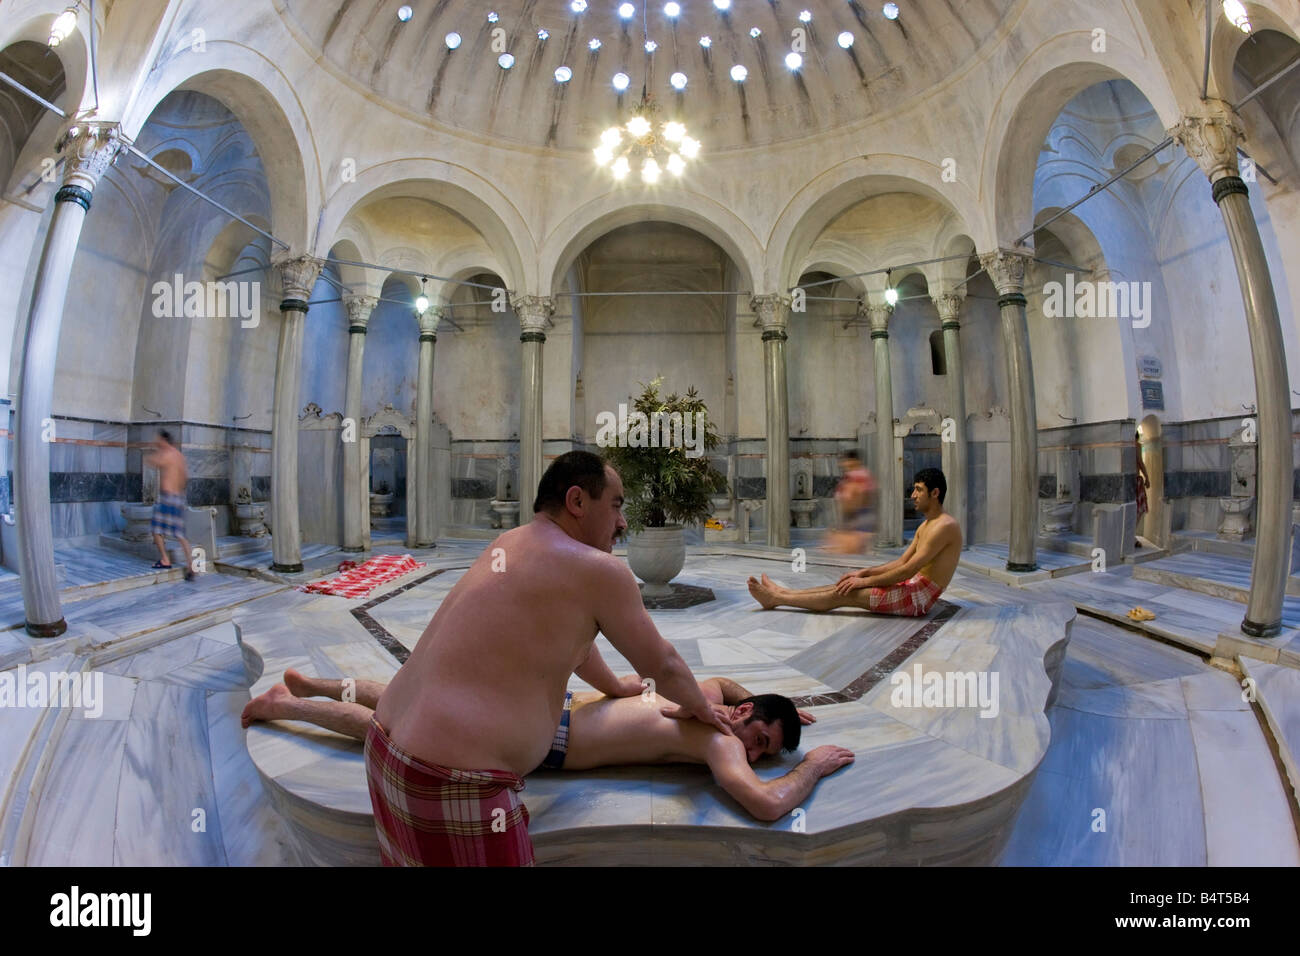 Aquarius istanbul  Gay friendly turkish hammam sauna!